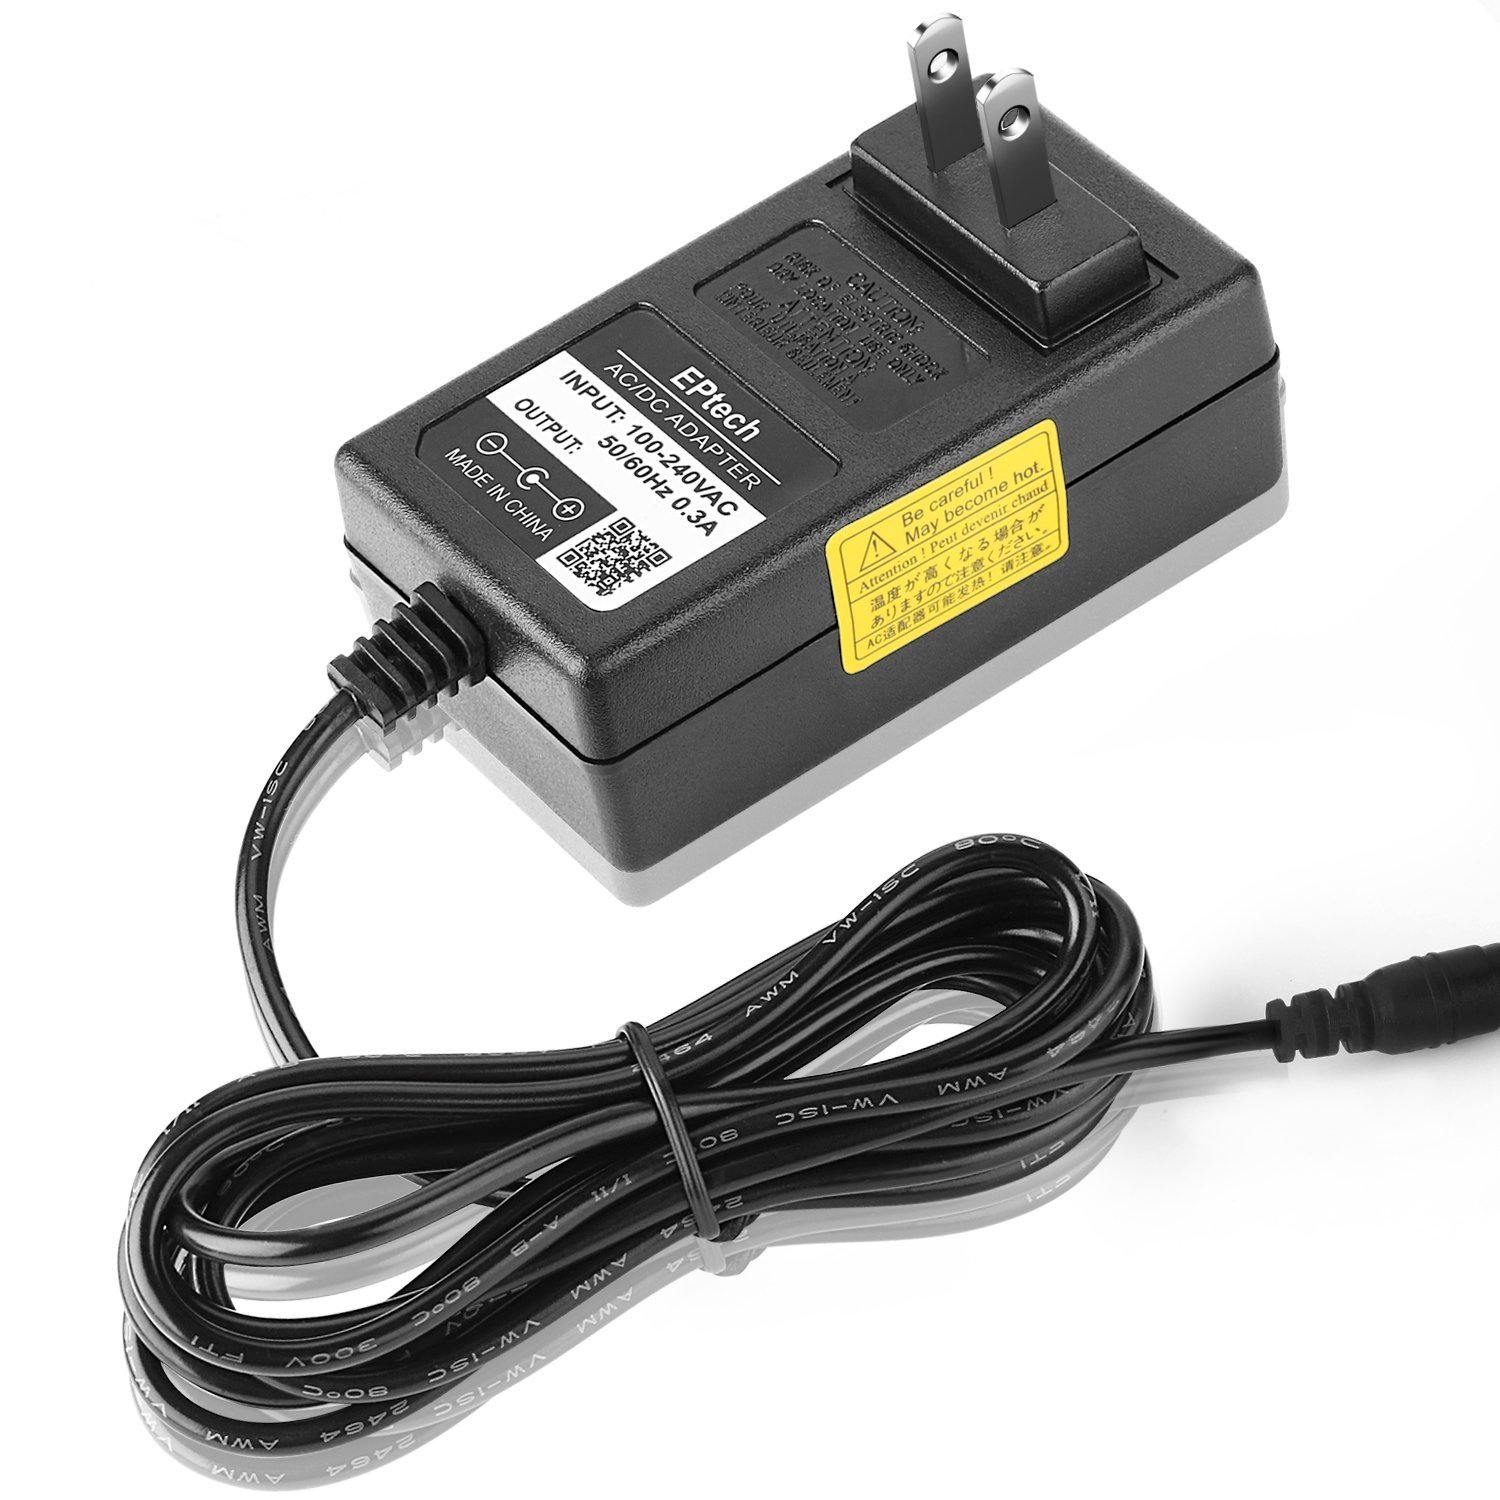 Amazon.com: Ac Dc Adapter Charger for ILIFE A4, A4s, A6, V1, V3, V5 ...